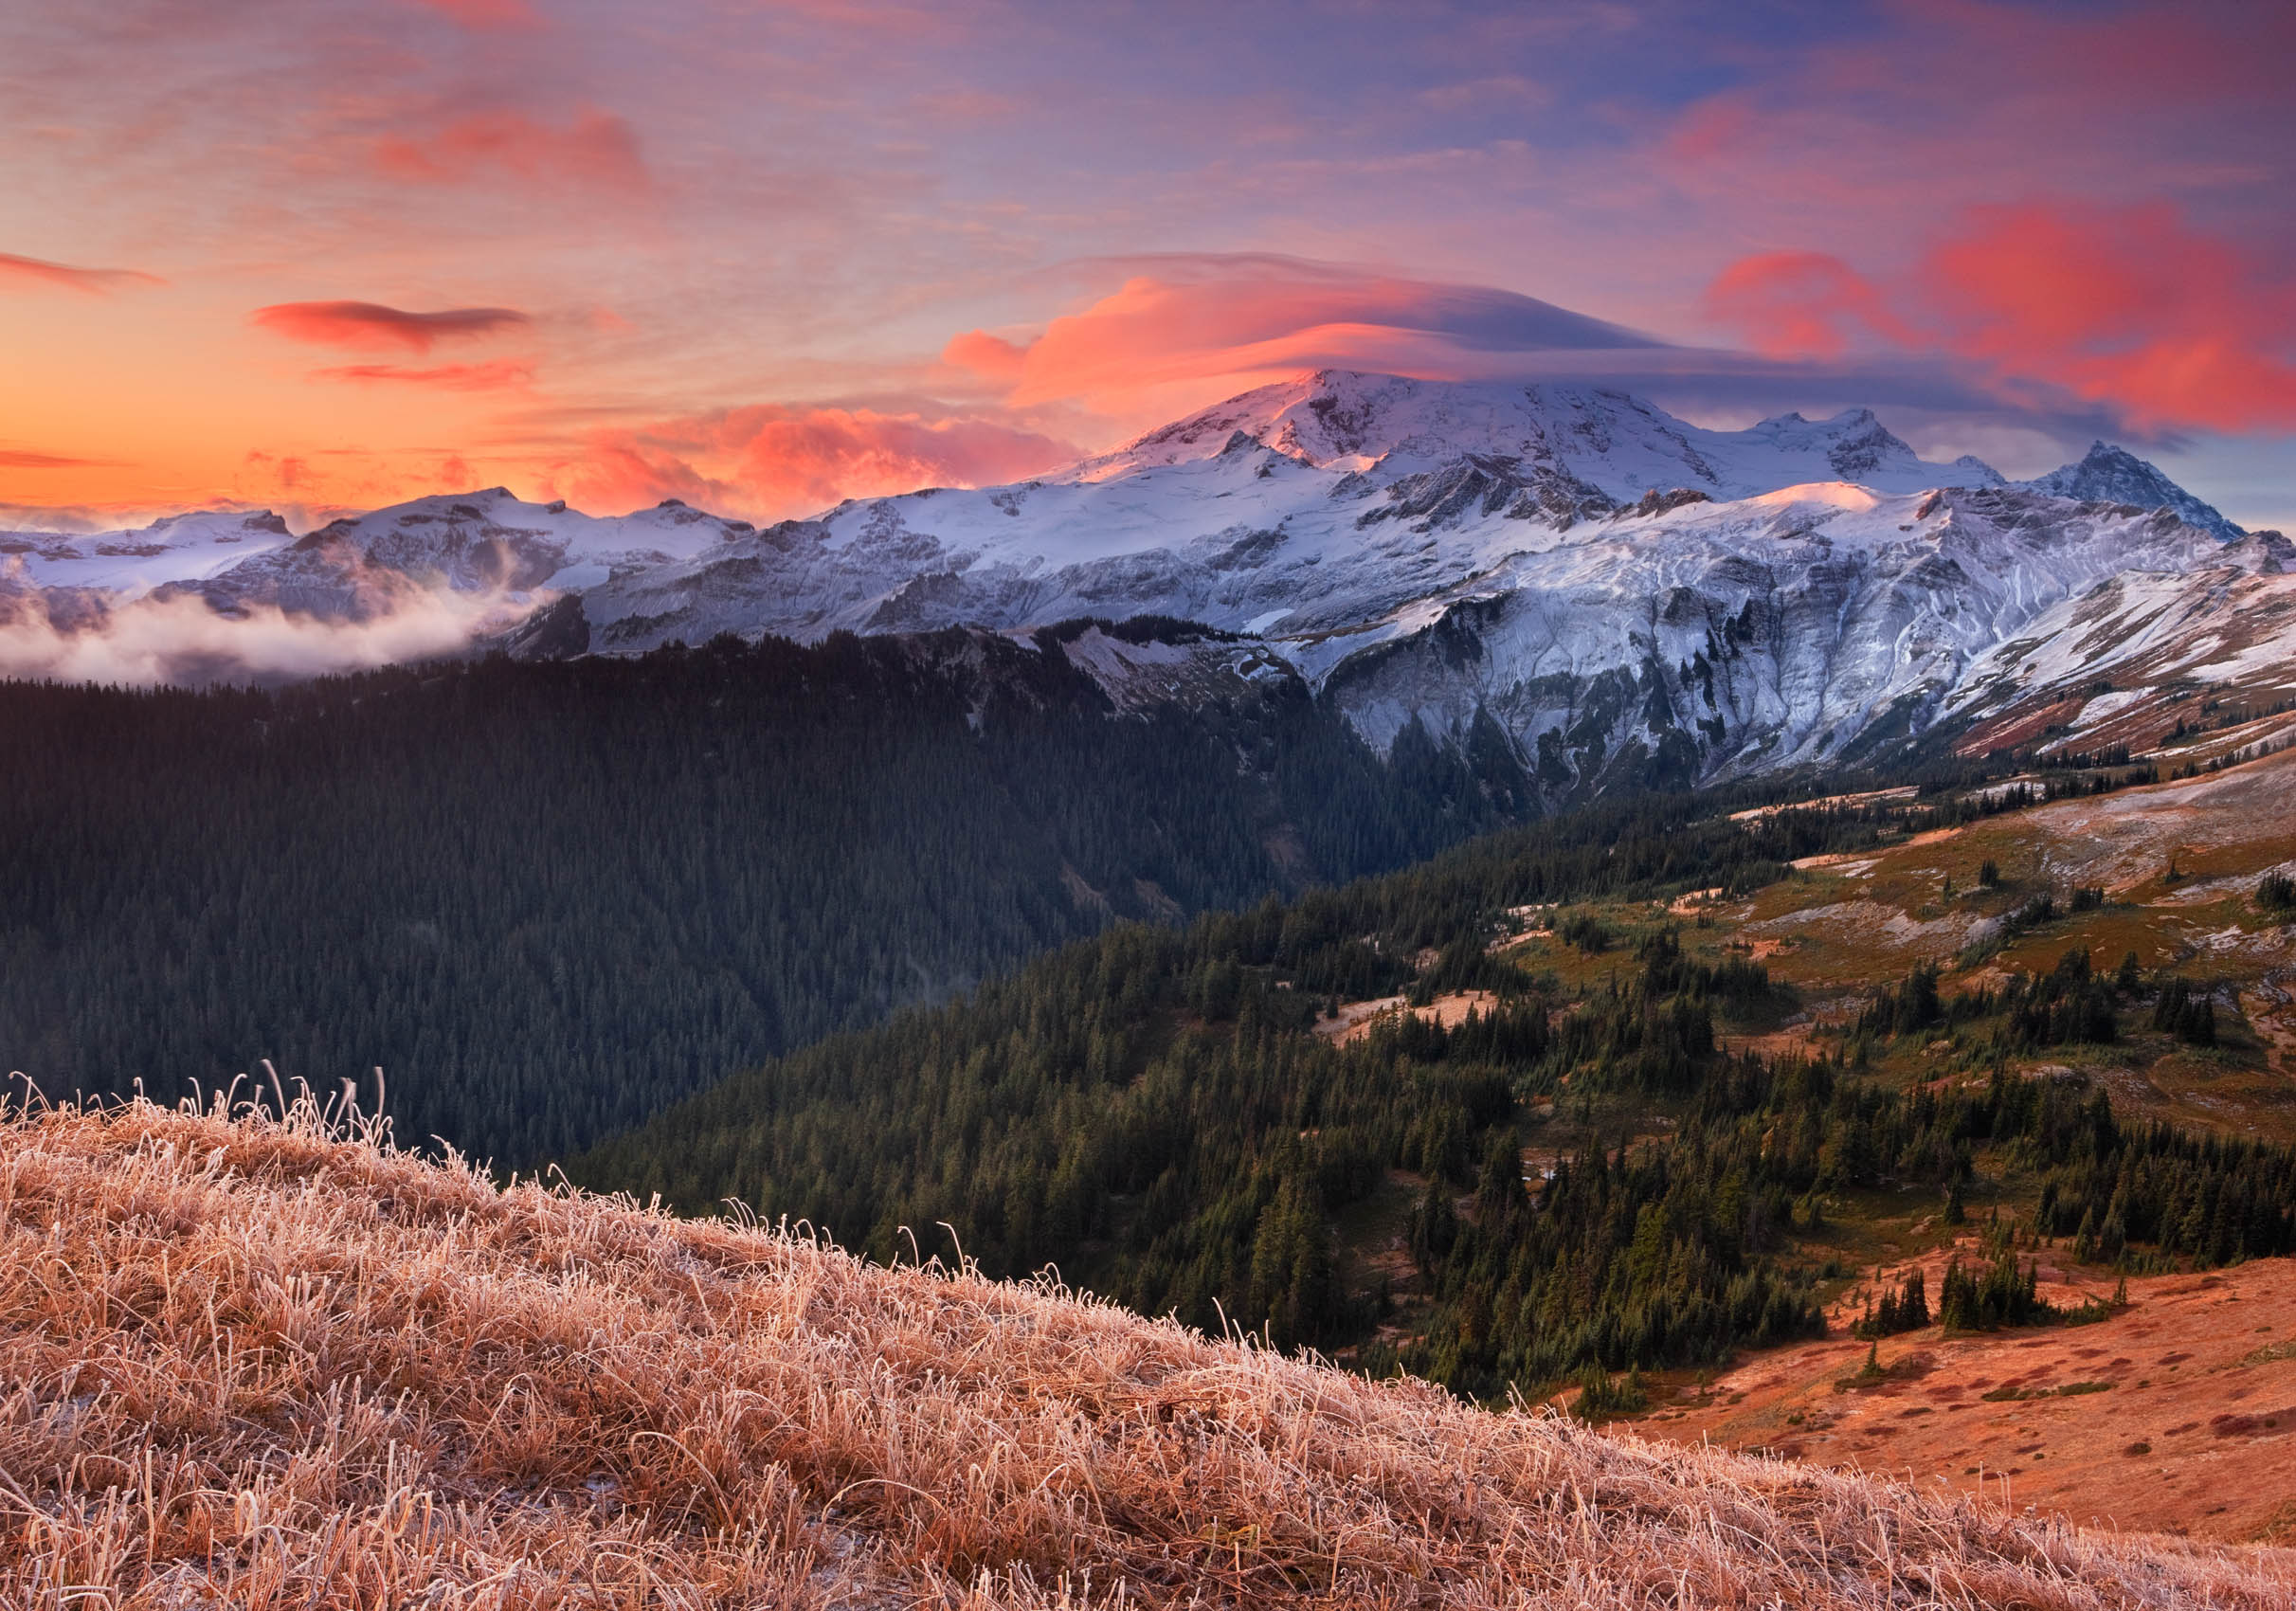 Storm Clears at Sunrise, Mount Baker from the Divide